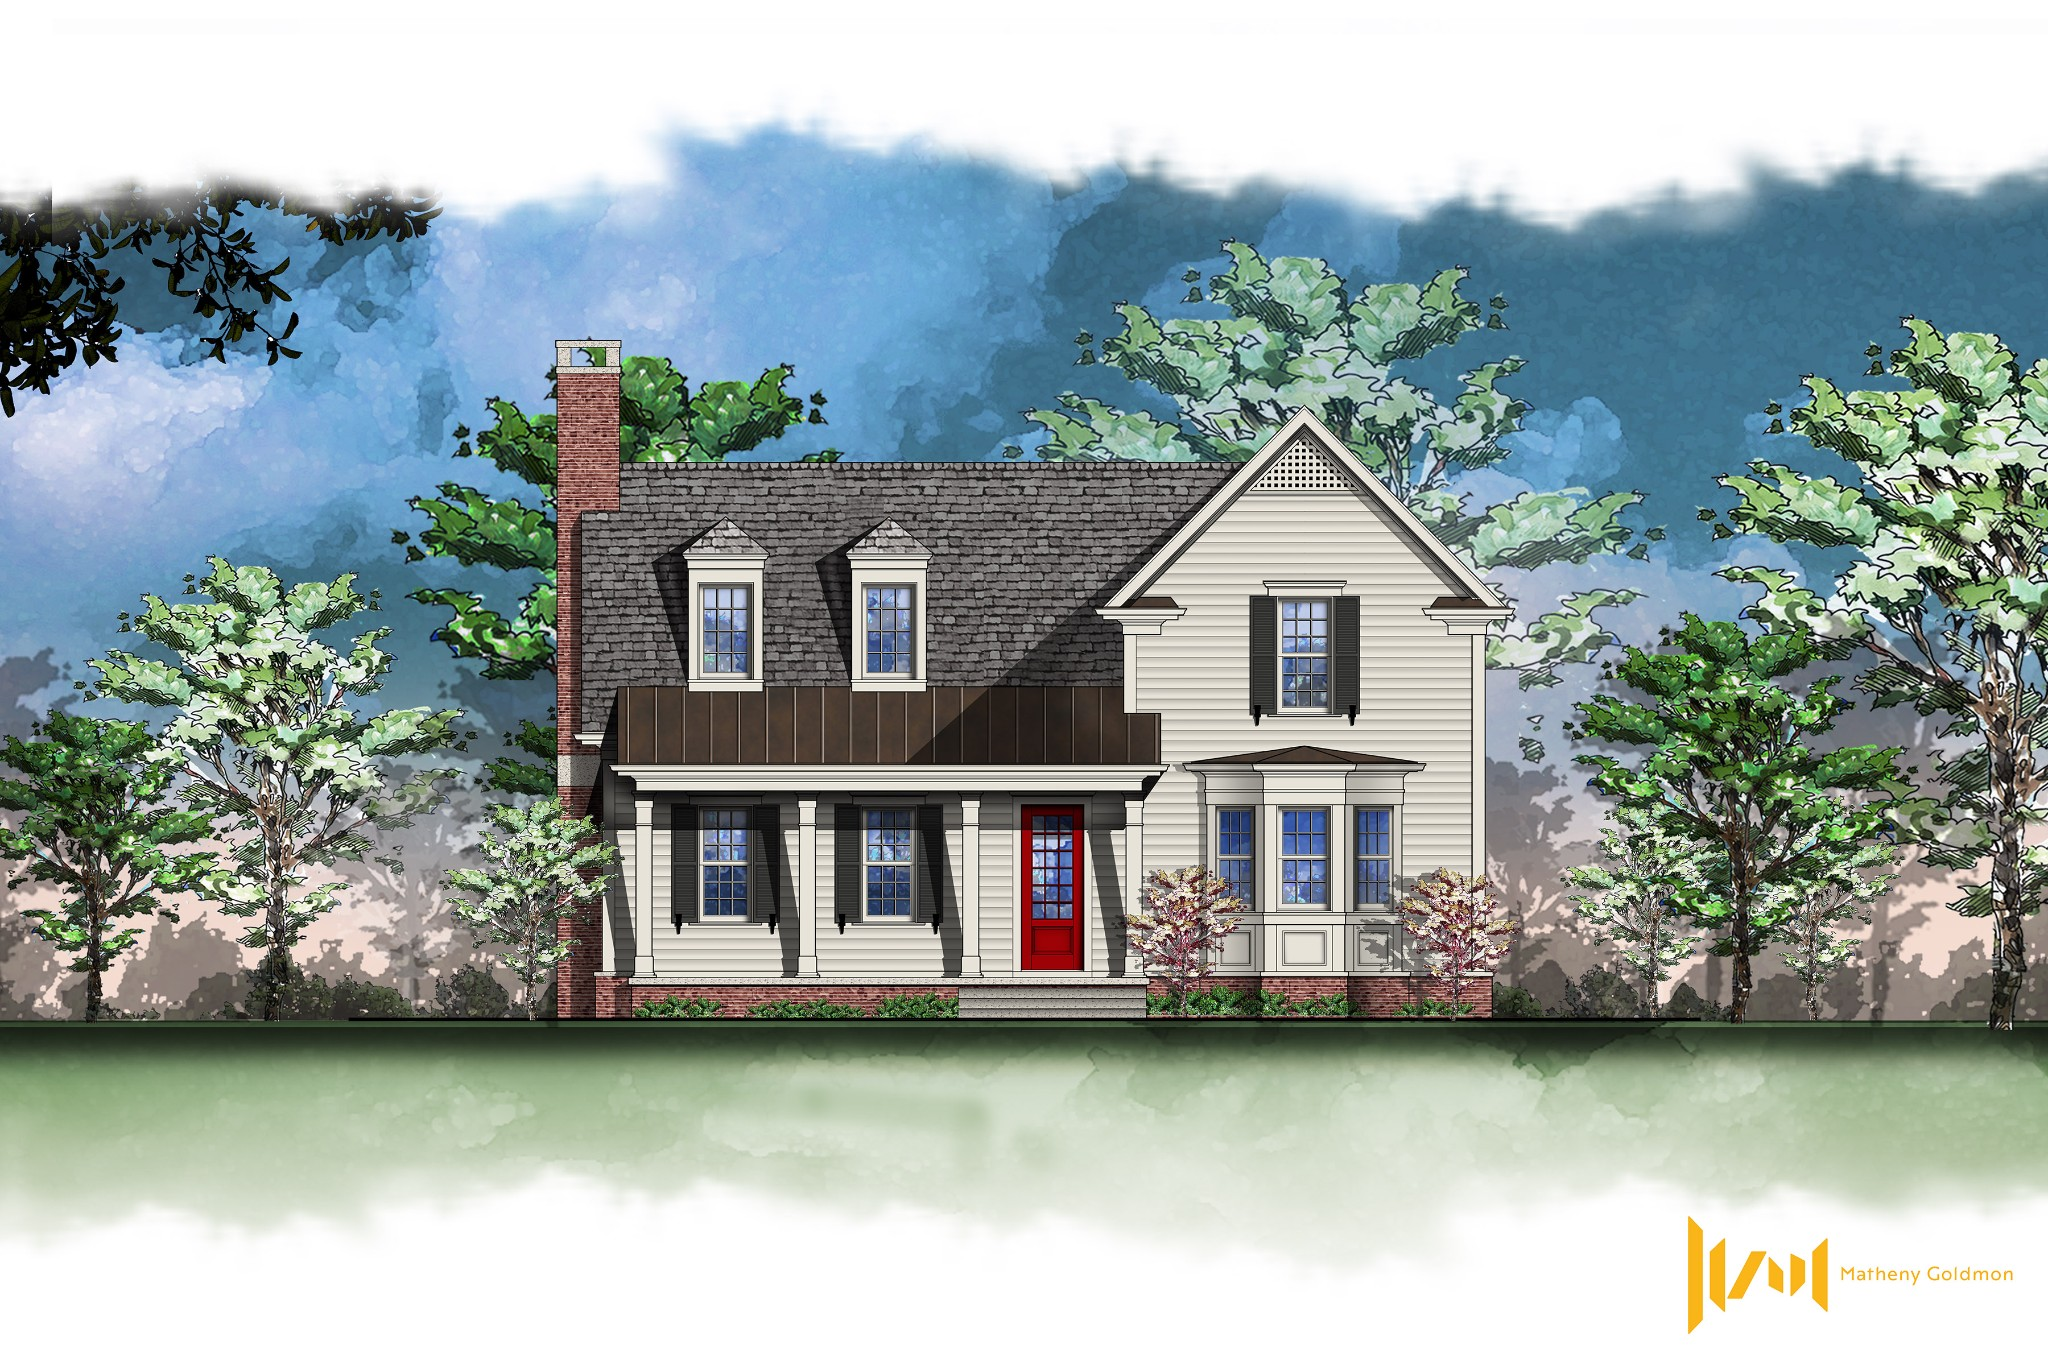 715 Webster Street Lot 326, Bellevue in Williamson County County, TN 37221 Home for Sale